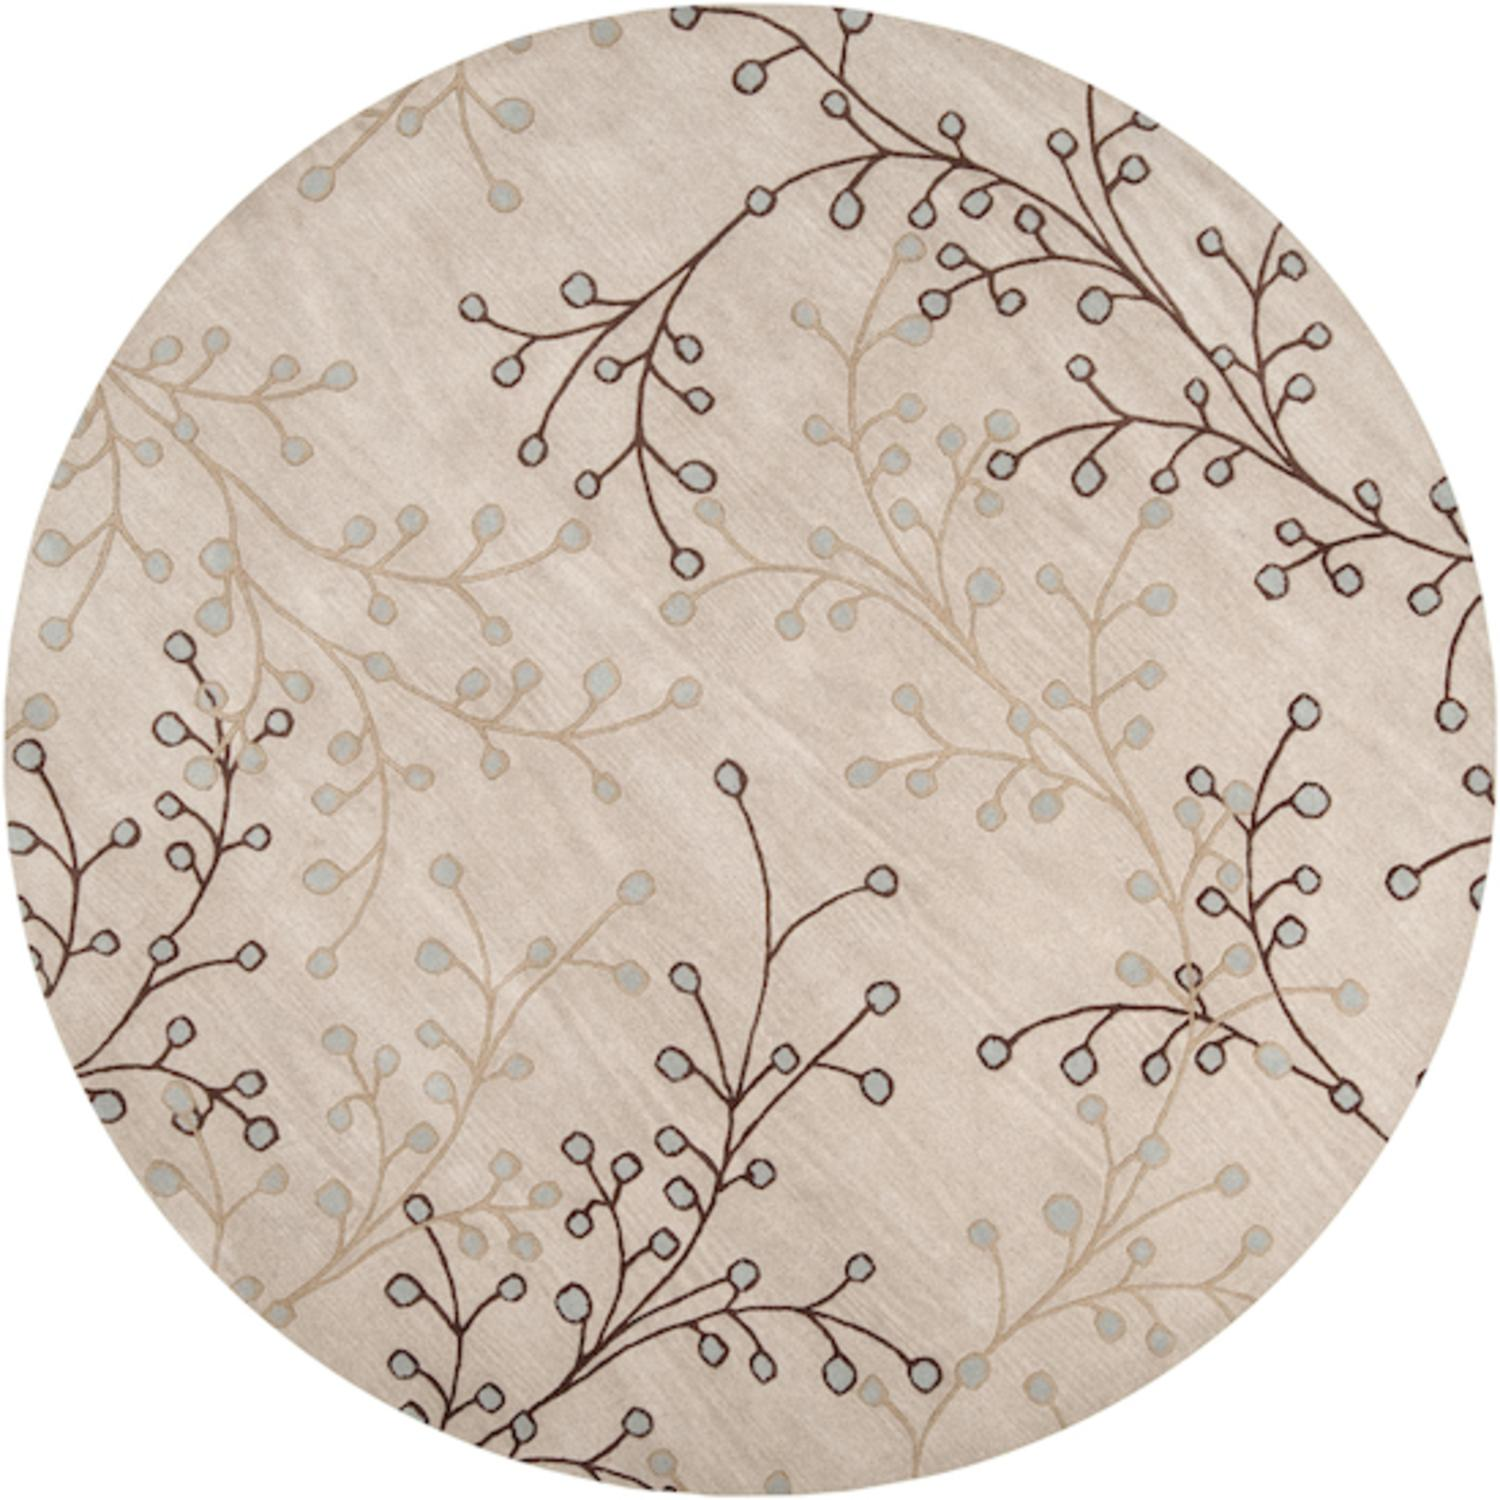 9.75' Fair Enoki Oyster Gray and Sepia Brown Wool Round Area Throw Rug